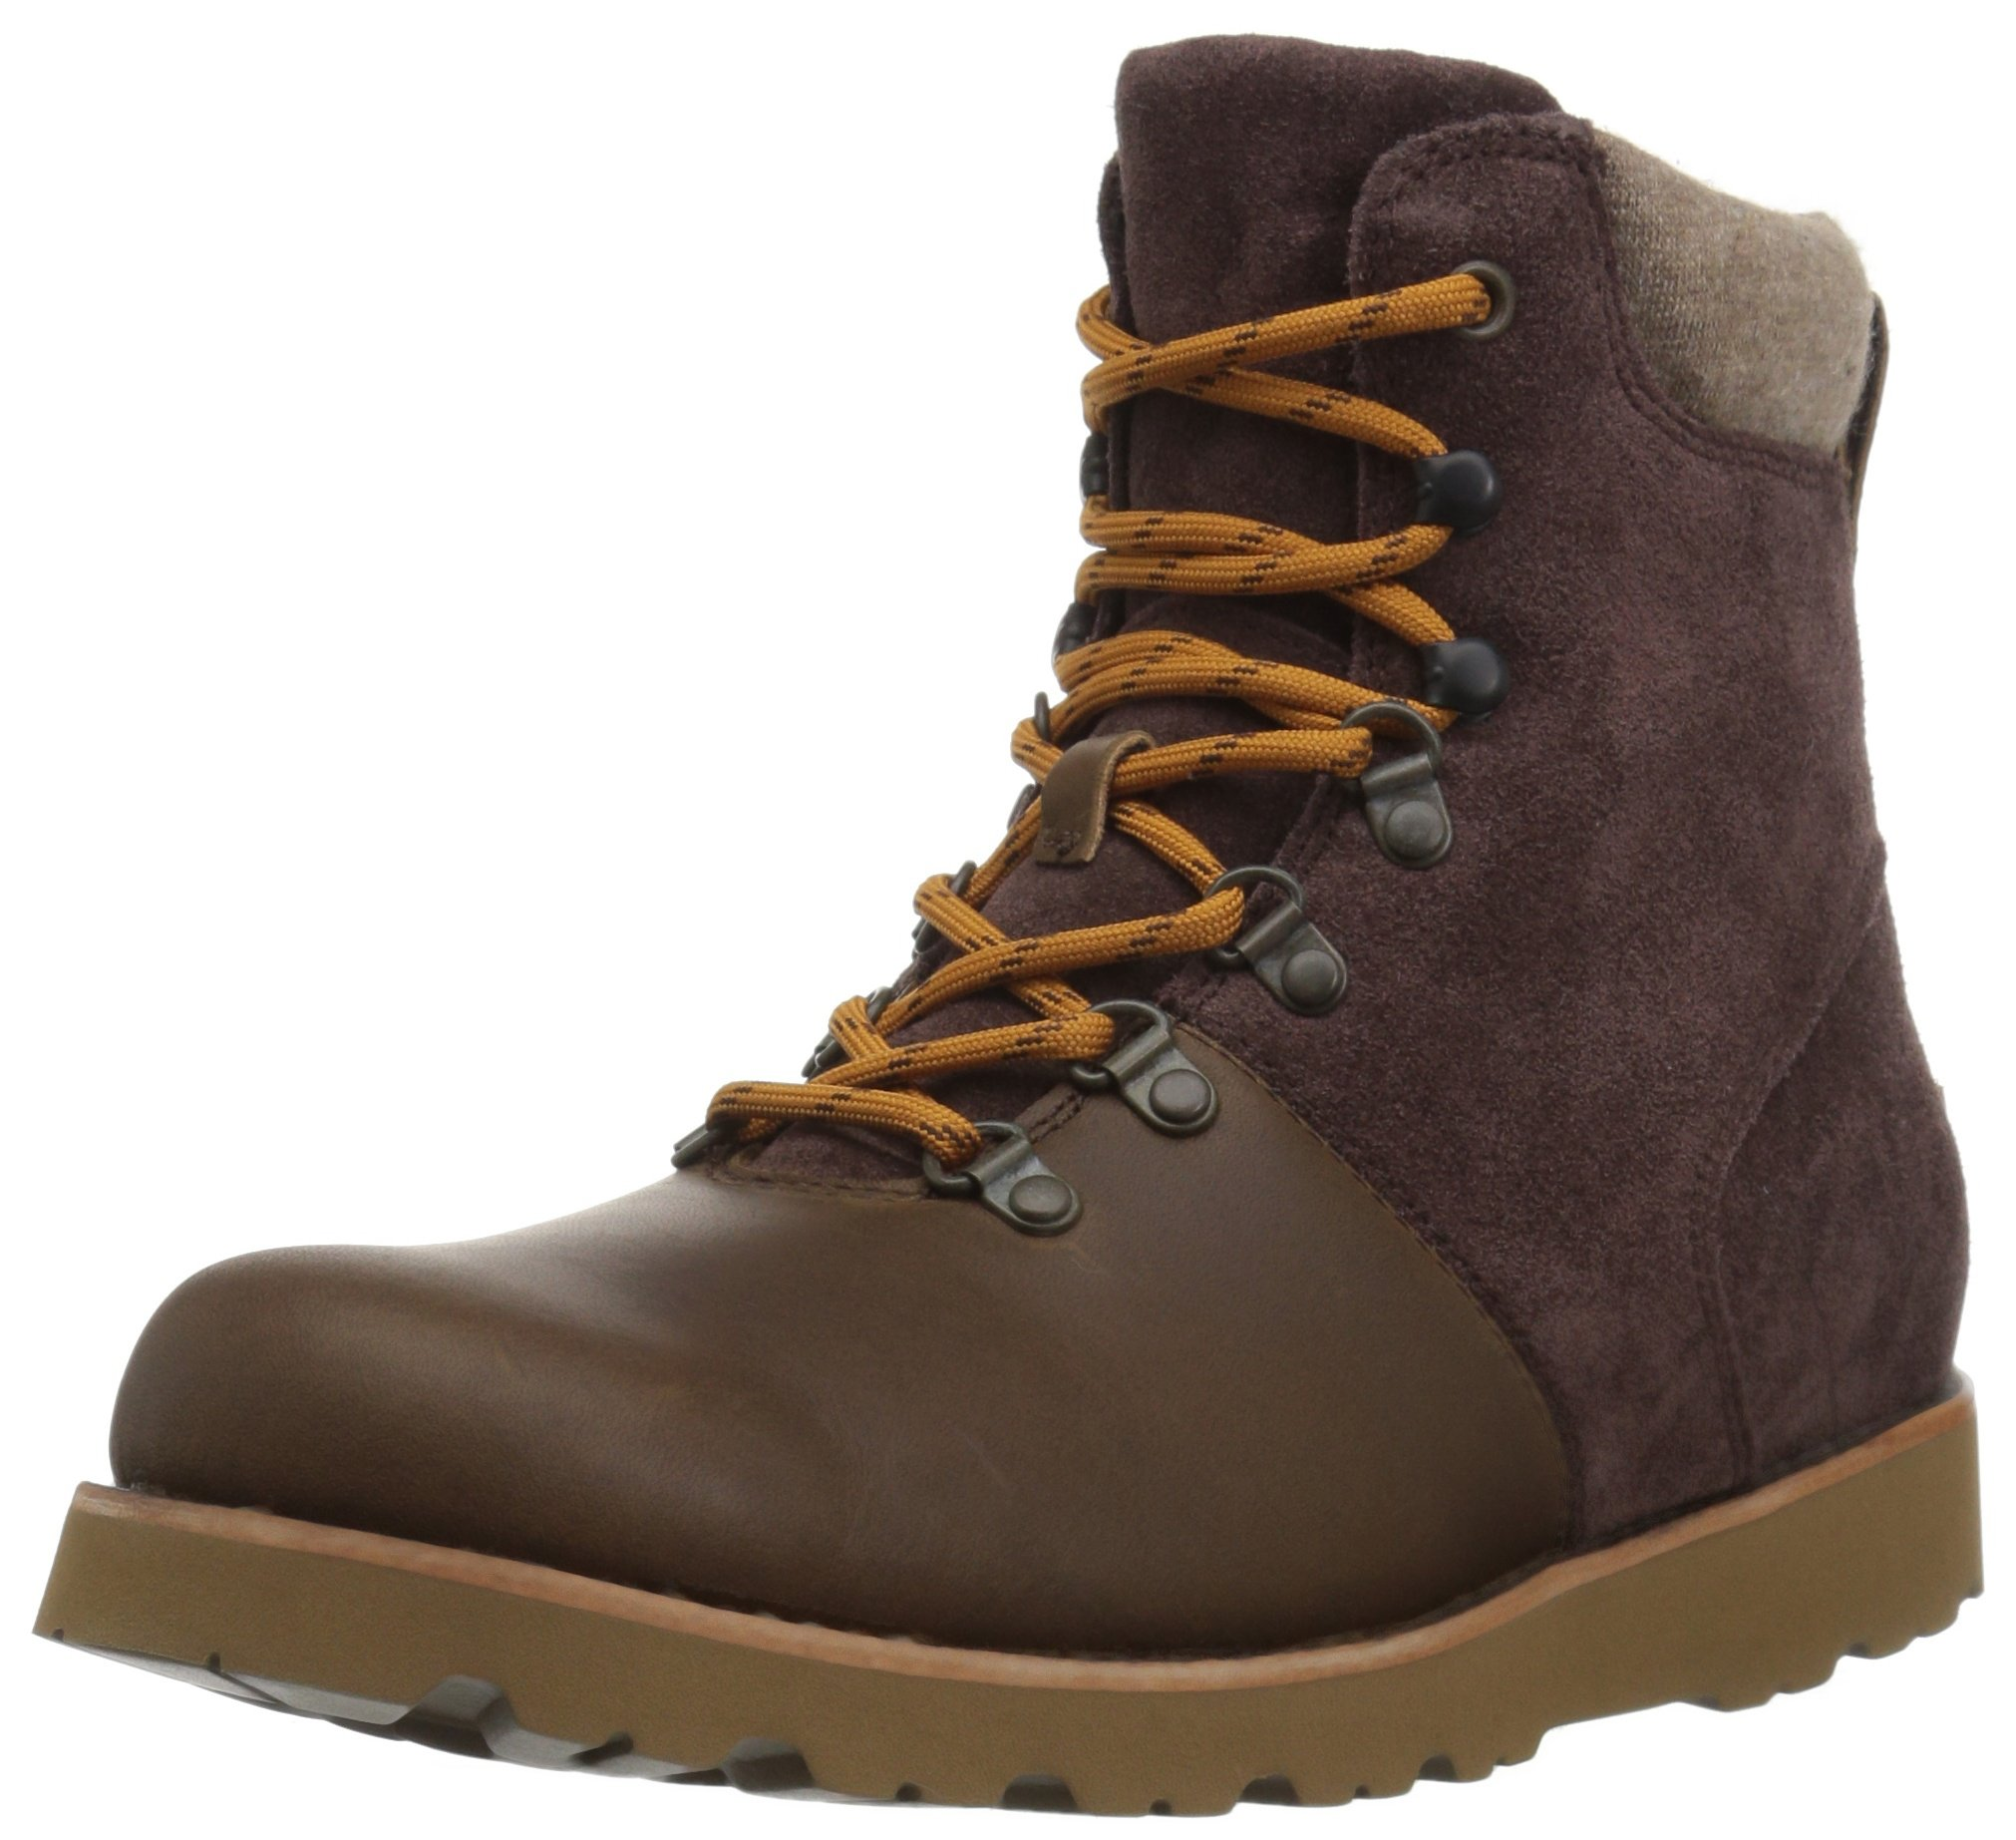 UGG Men's Halfdan Winter Boot, Grizzly, 10 M US by UGG